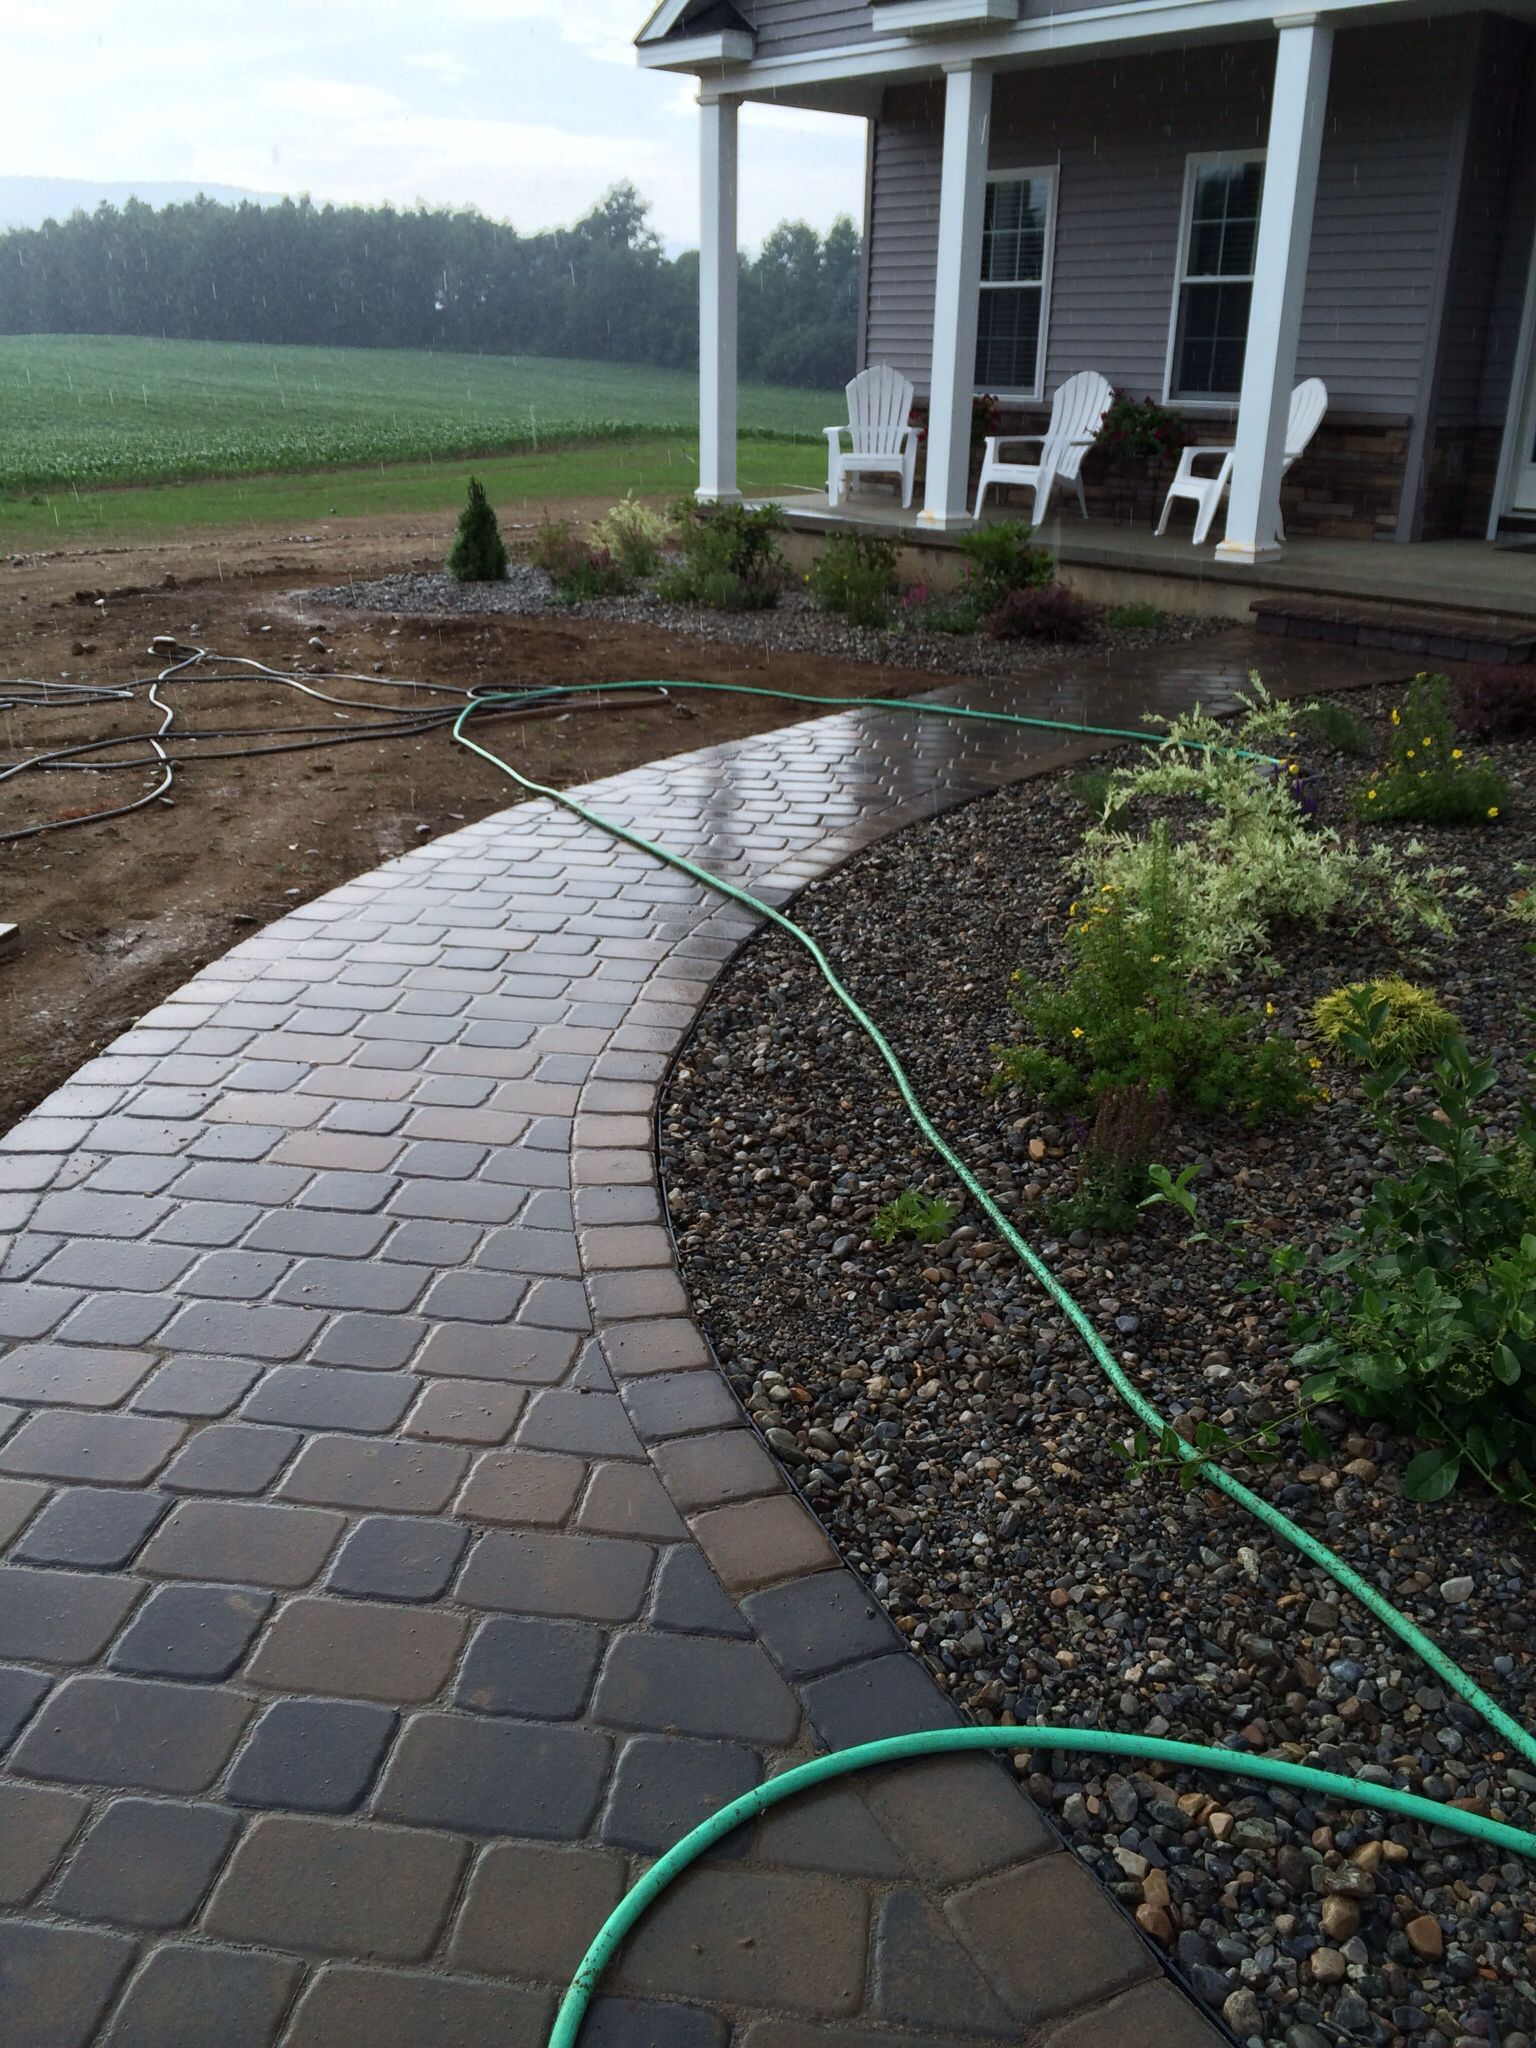 Belgard London Cobble In Saratoga Blend. Installed By Matts Landscaping U0026  Stonescaping LLC 2014